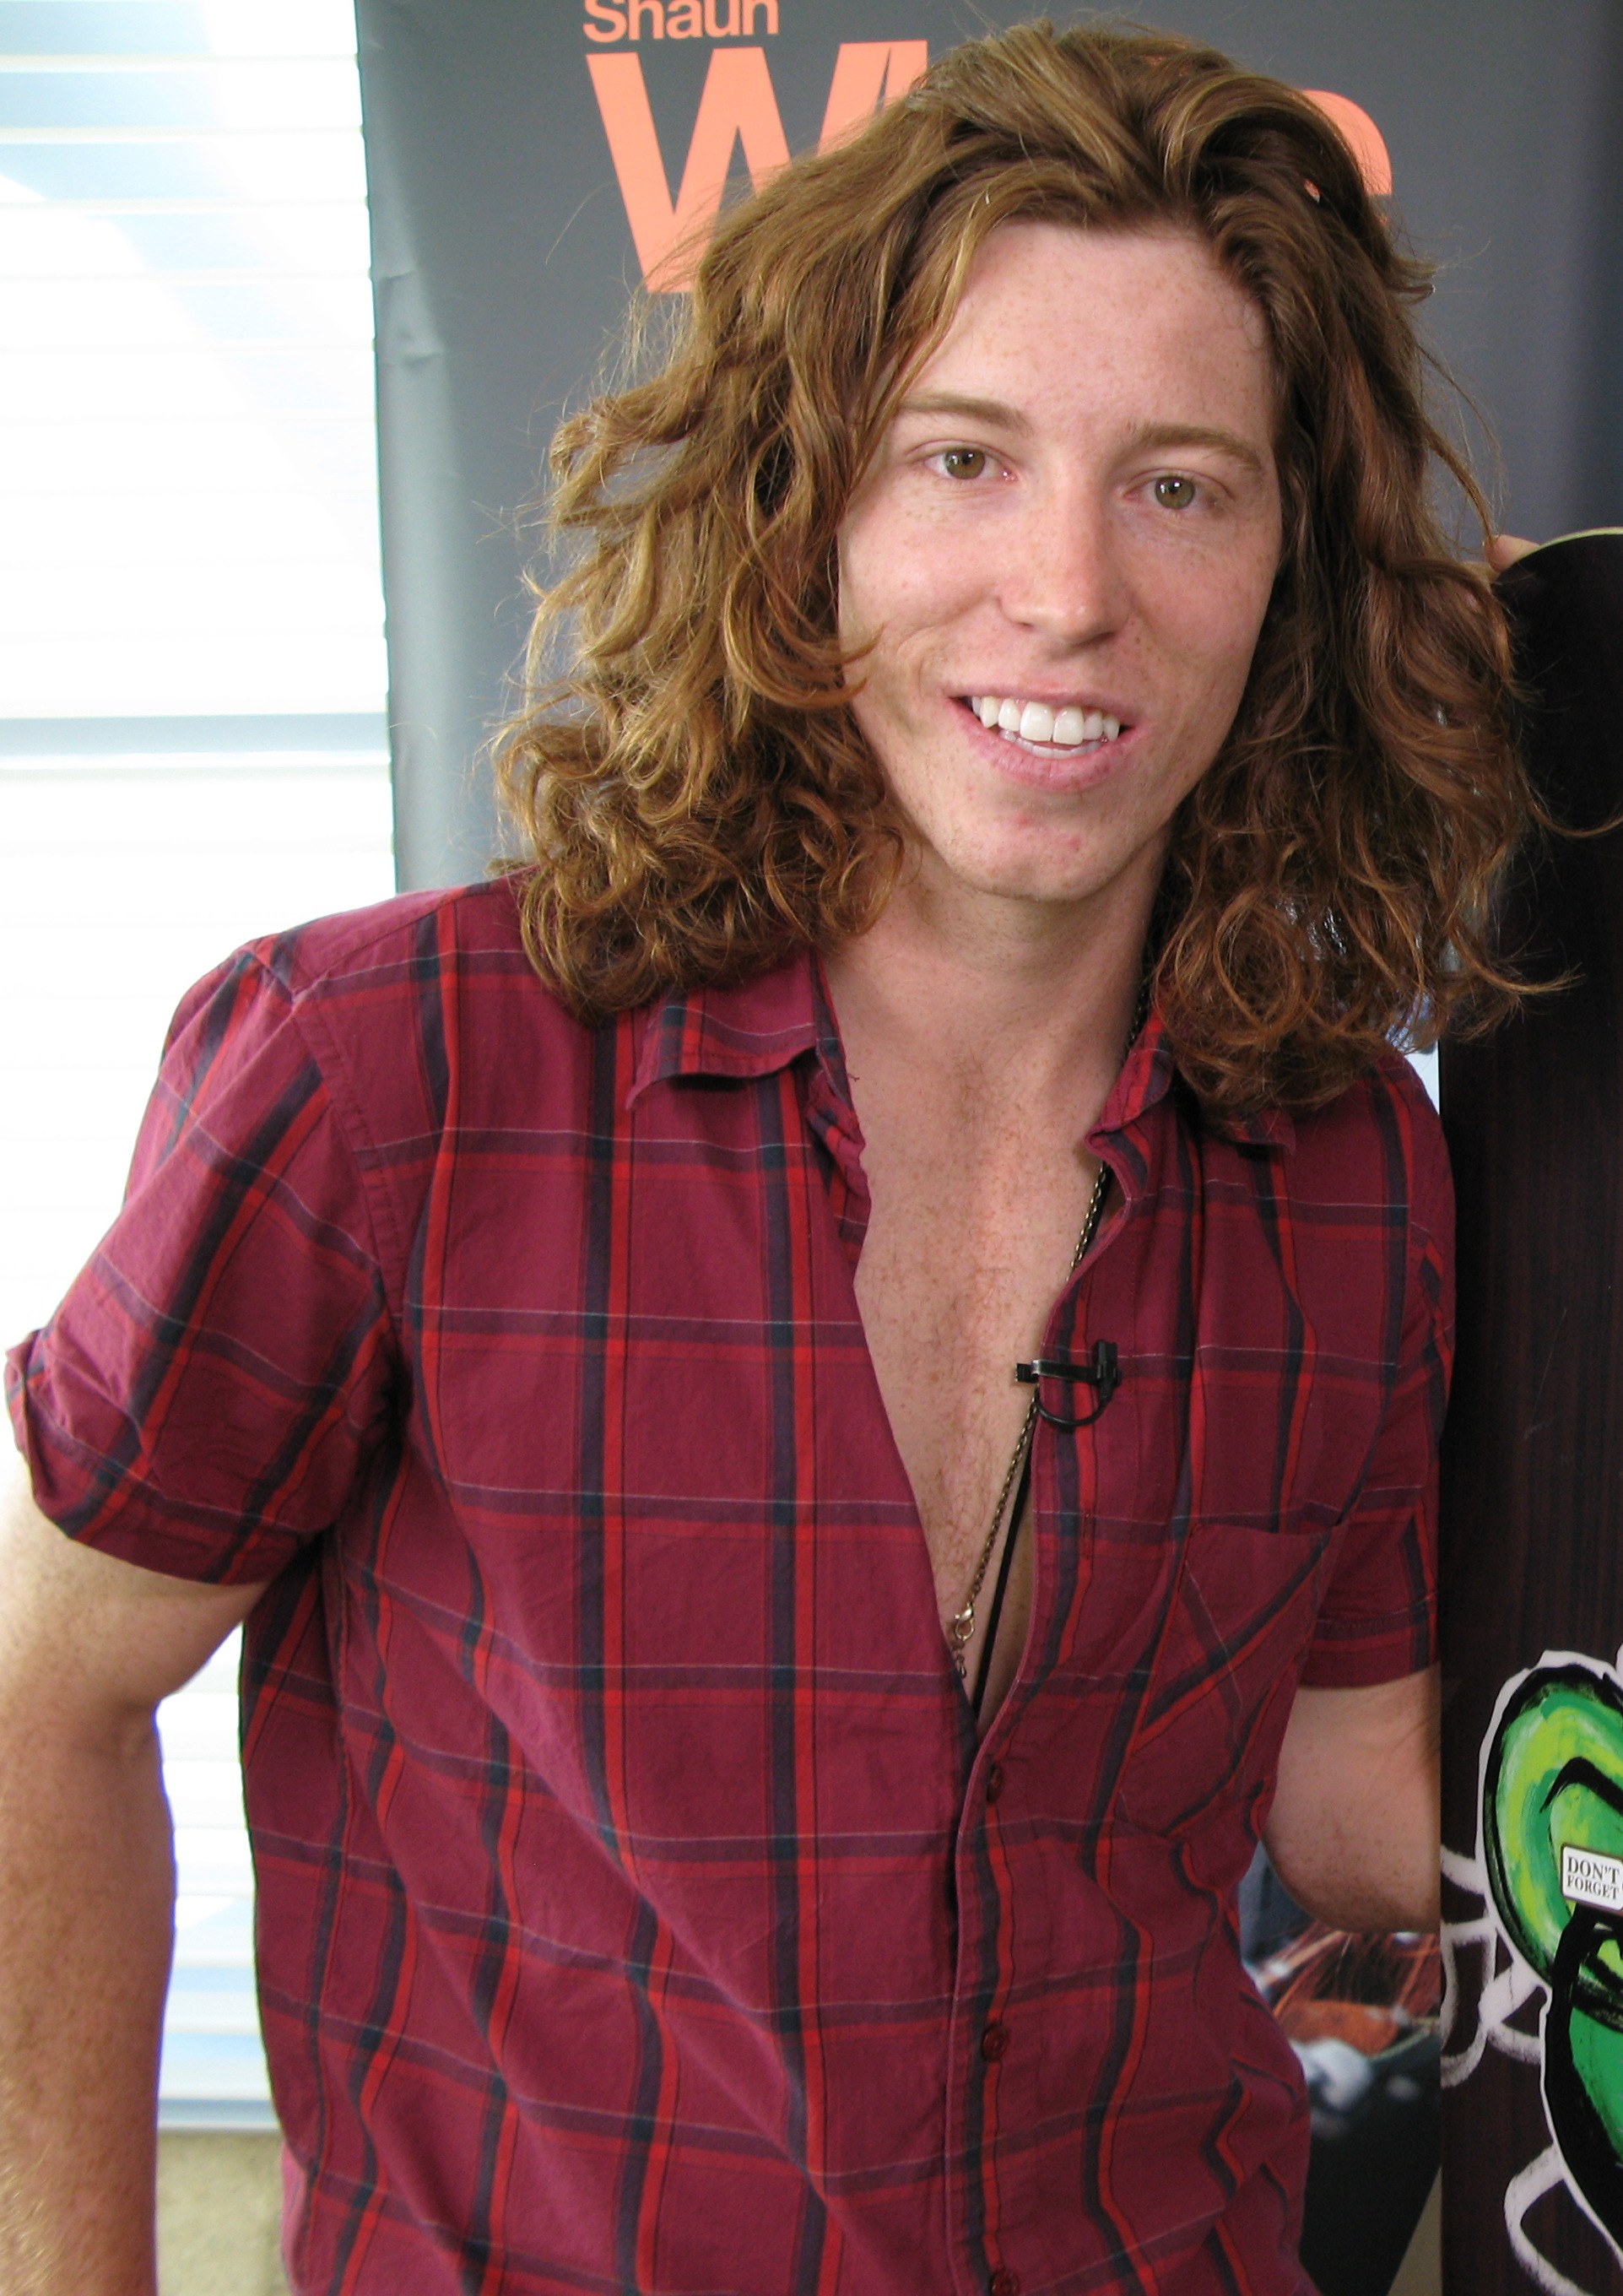 a biography of shaun white Shaun white won another olympic gold medal in snowboarding on tuesday  night and etched himself into the record books for fans of the.